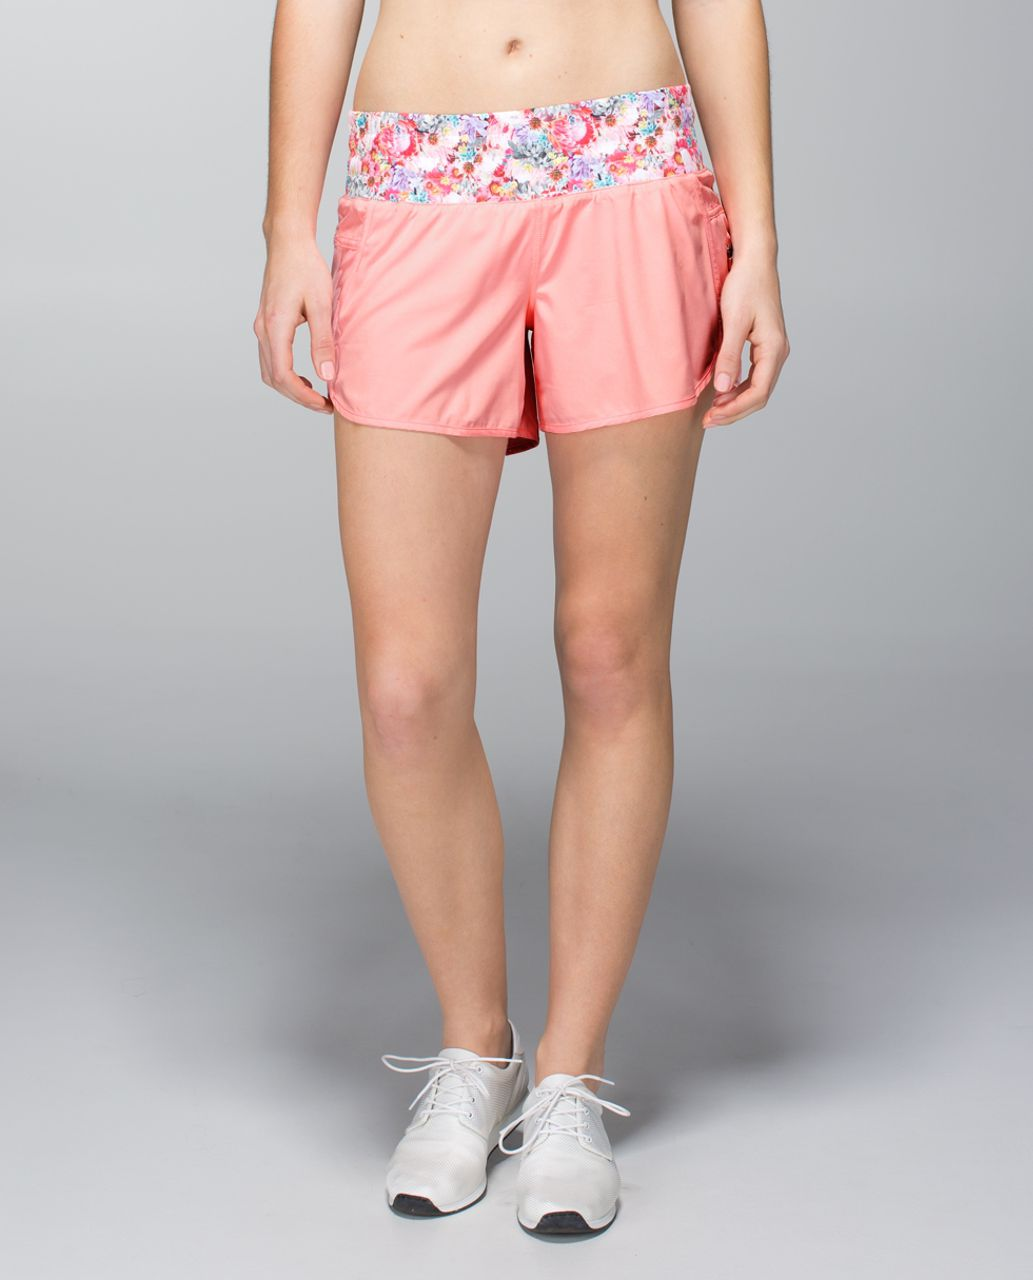 Lululemon Tracker Short II *4-way Stretch - Bleached Coral / Flowabunga Mini Multi